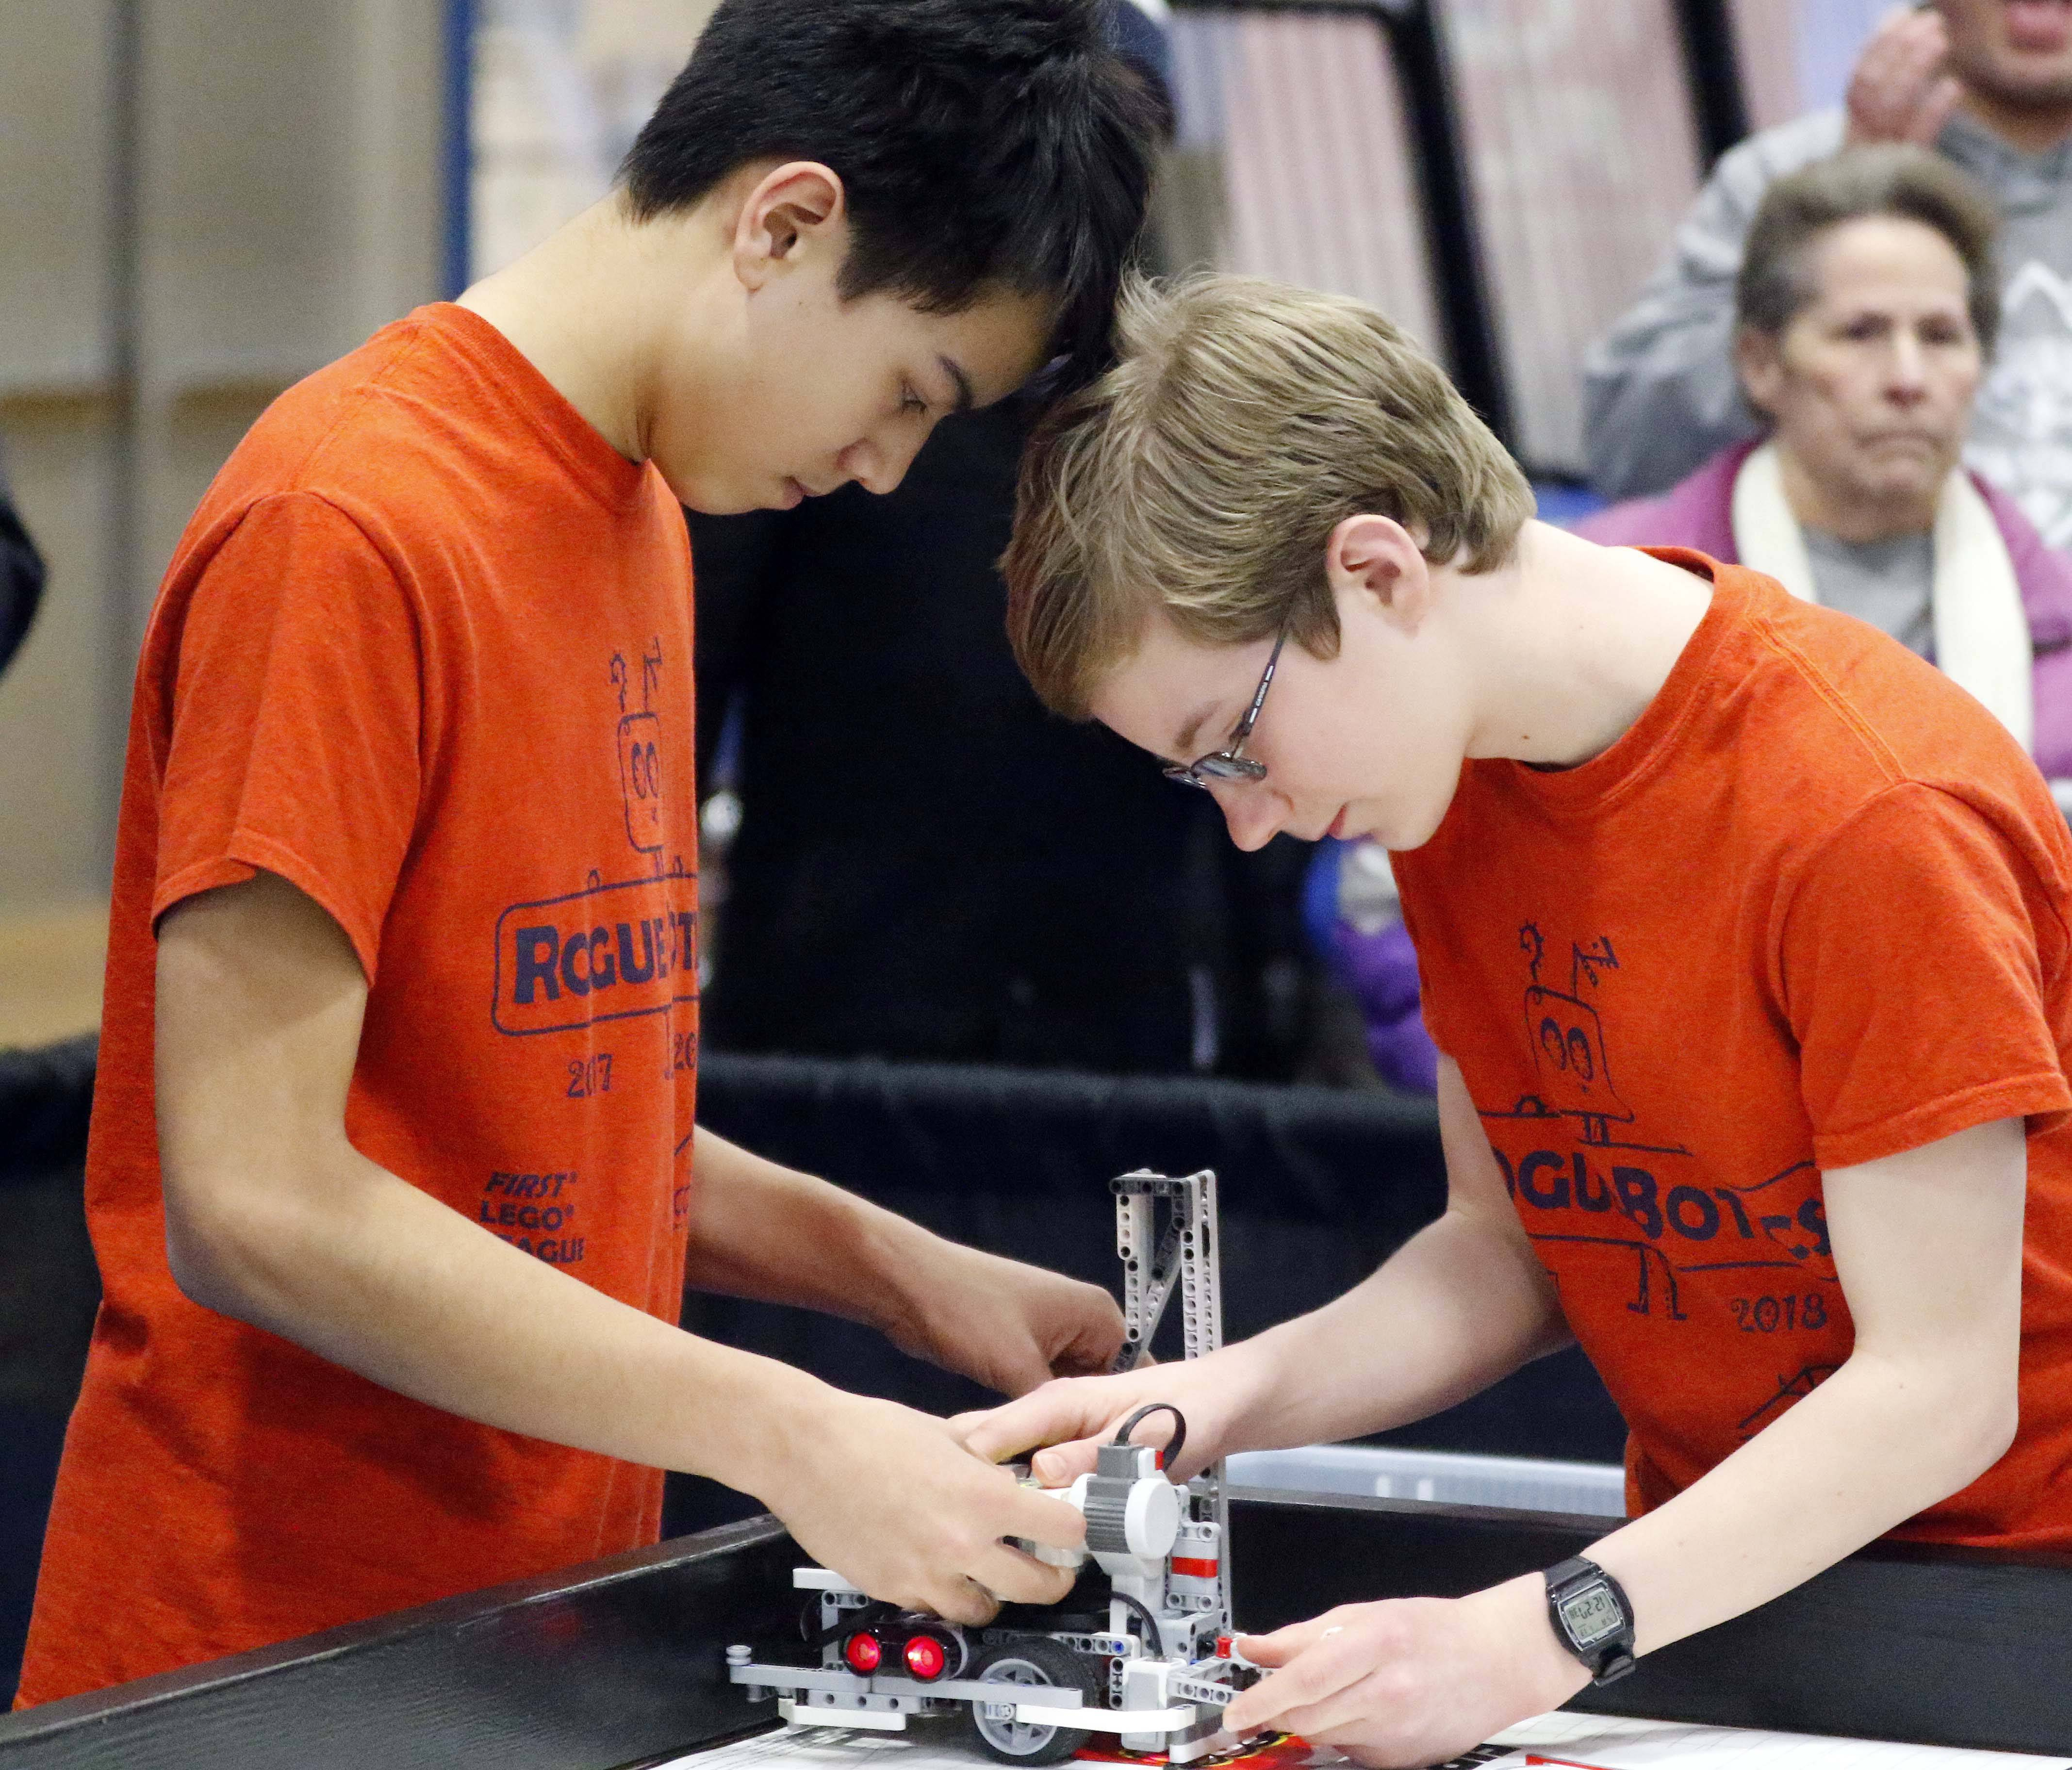 Sean Liu, left, and Logan Cunz, both 14, from Kaneland Harter Middle School in Sugar Grove, change out part of their Lego robot Saturday during the First Lego Championship Tournament at Elgin Community College where 50 teams from across the state competed.